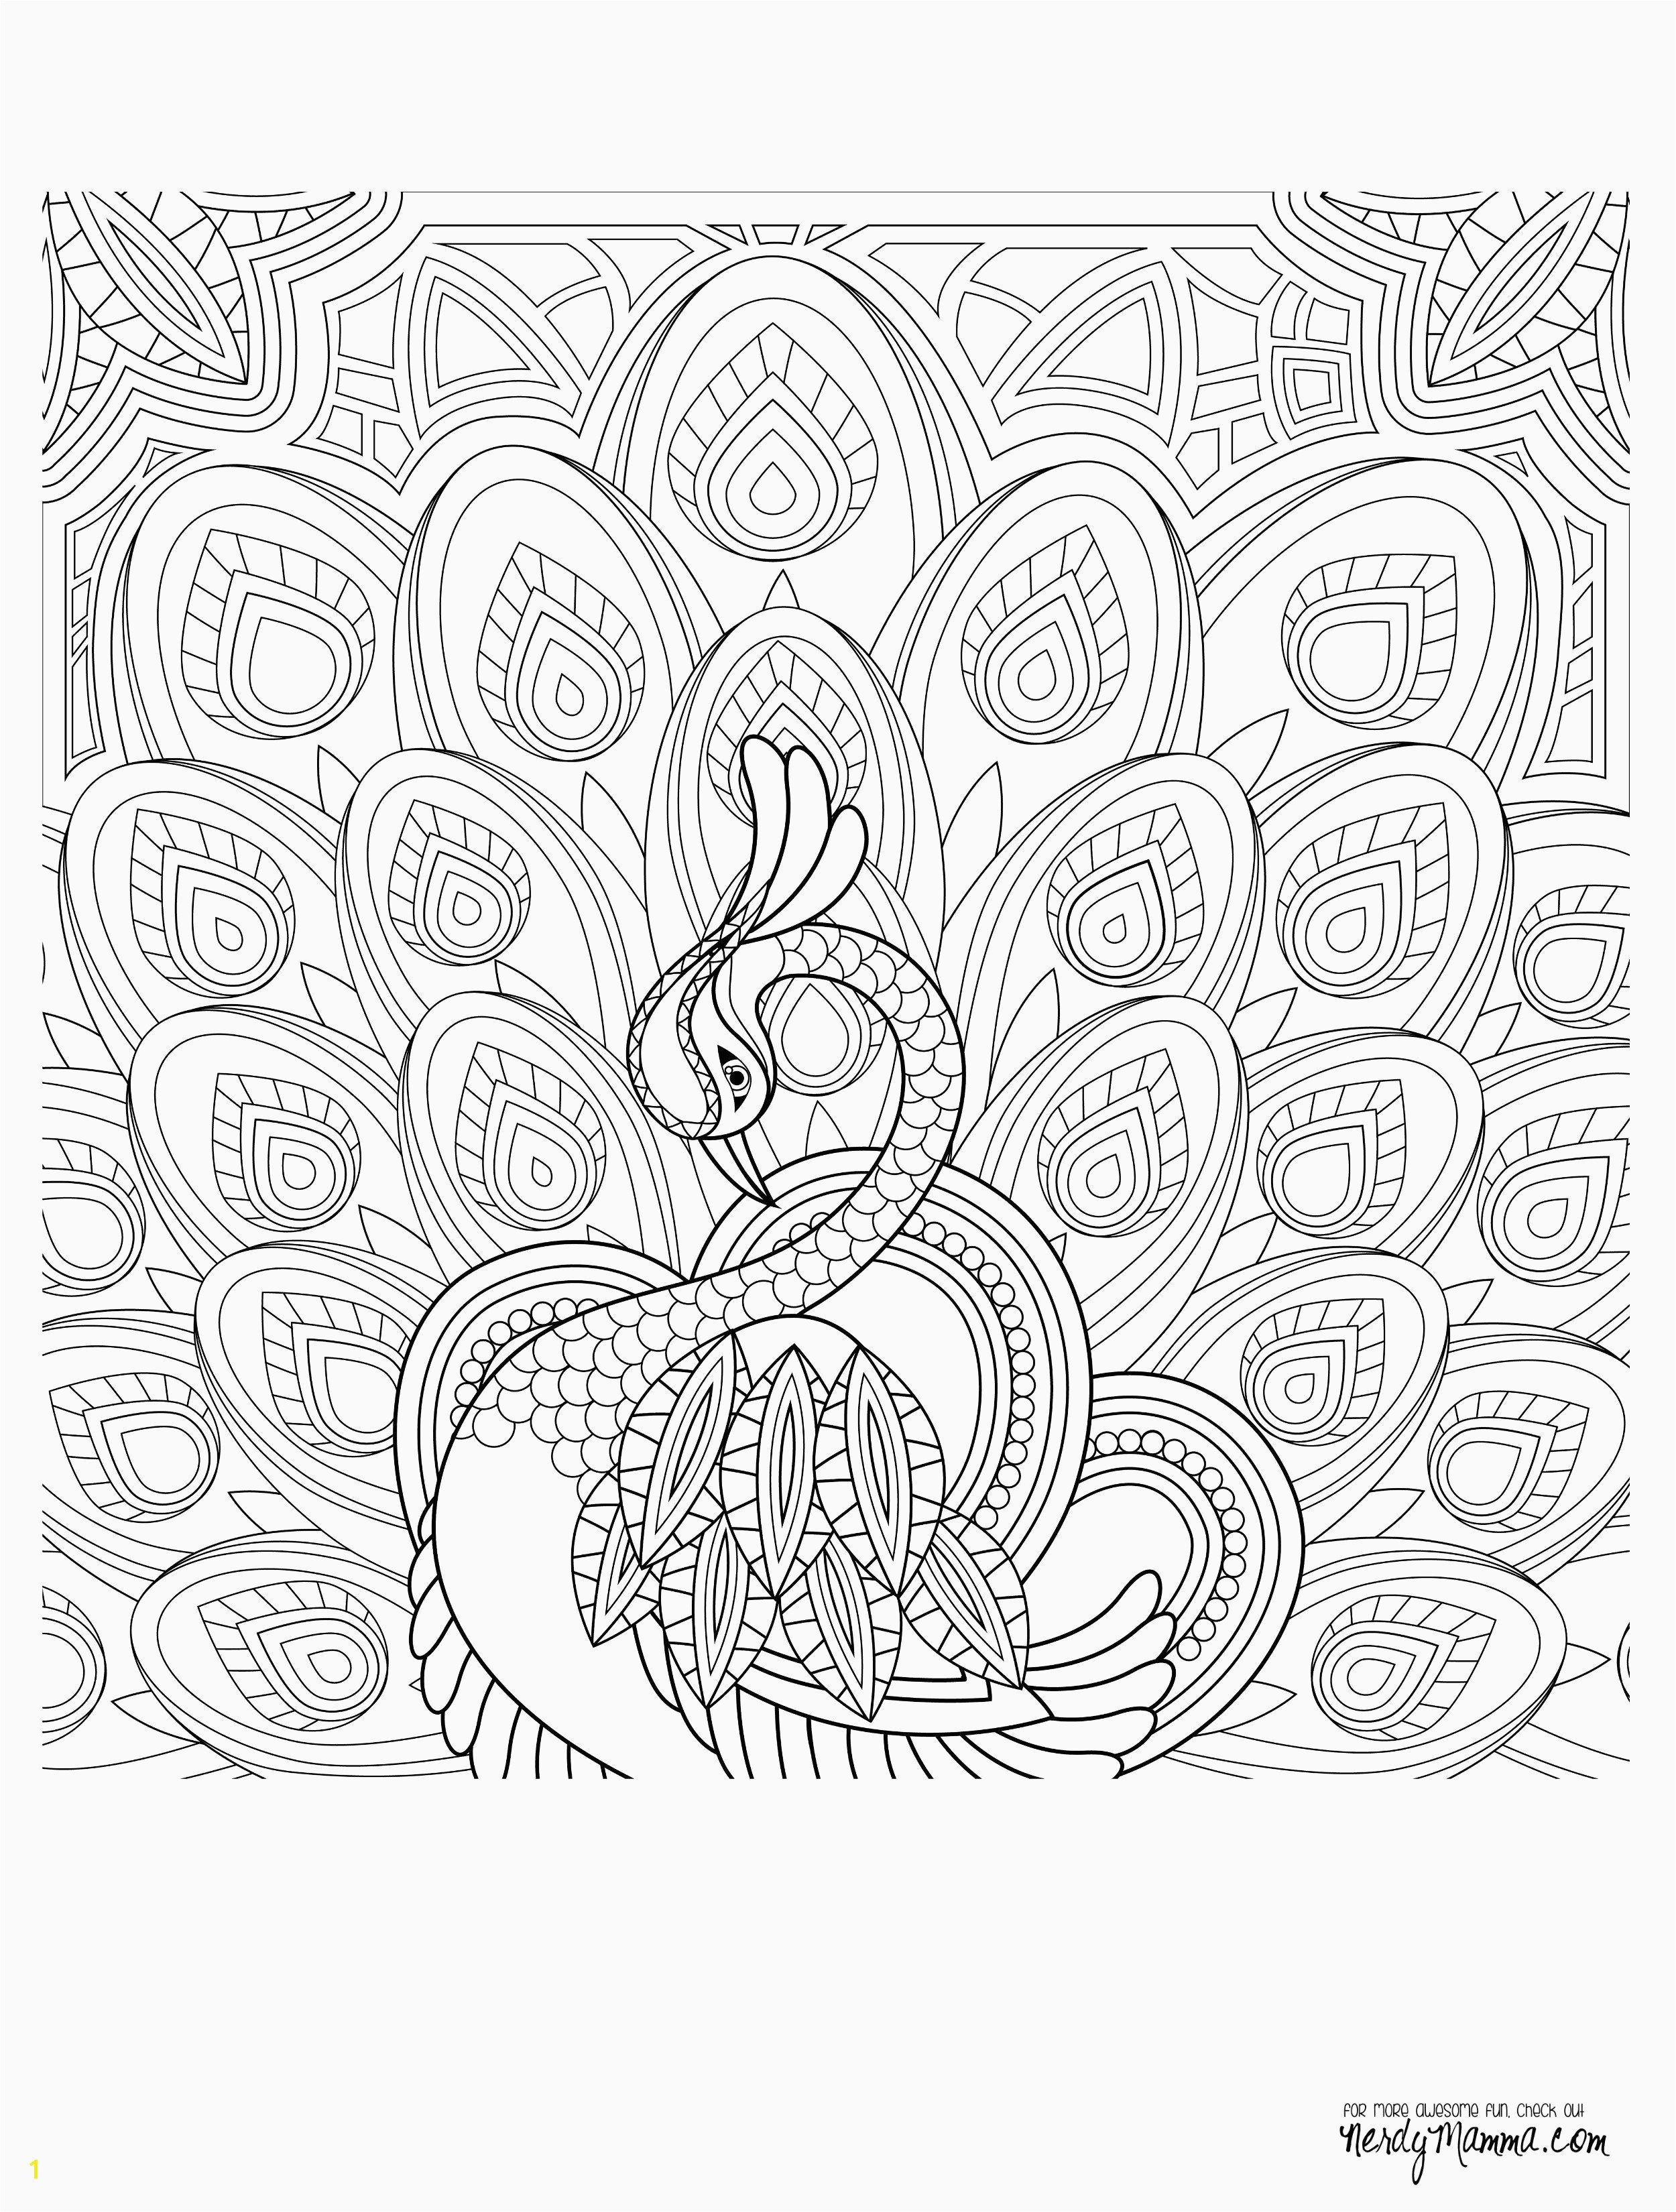 Free Printable Nature Coloring Pages Beautiful Awesome Coloring Page for Adult Od Kids Simple Floral Heart